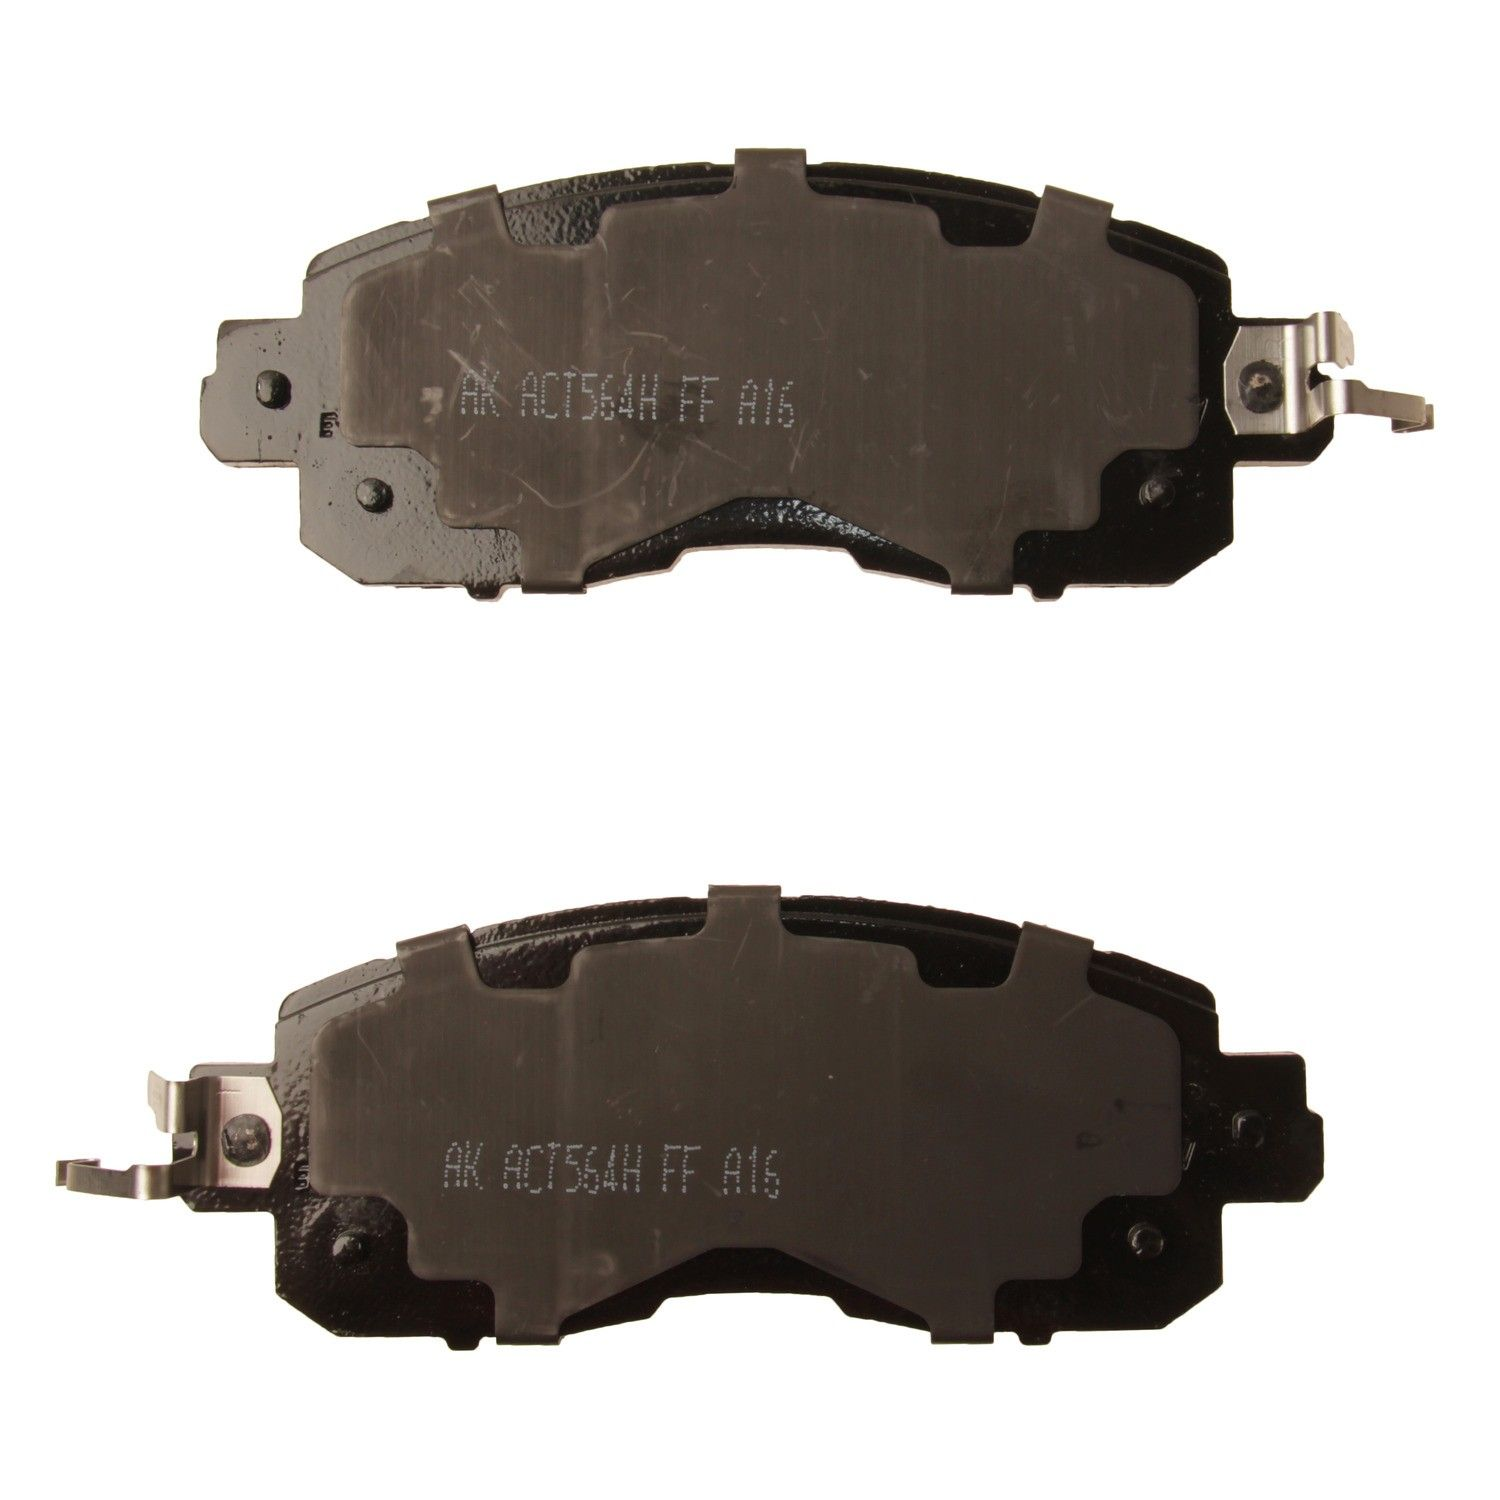 2013 Nissan Altima Disc Brake Pad   Front (Akebono ACT1650) Contents  Premium Stainless Hardware Included OE Pad Material Is Ceramic .